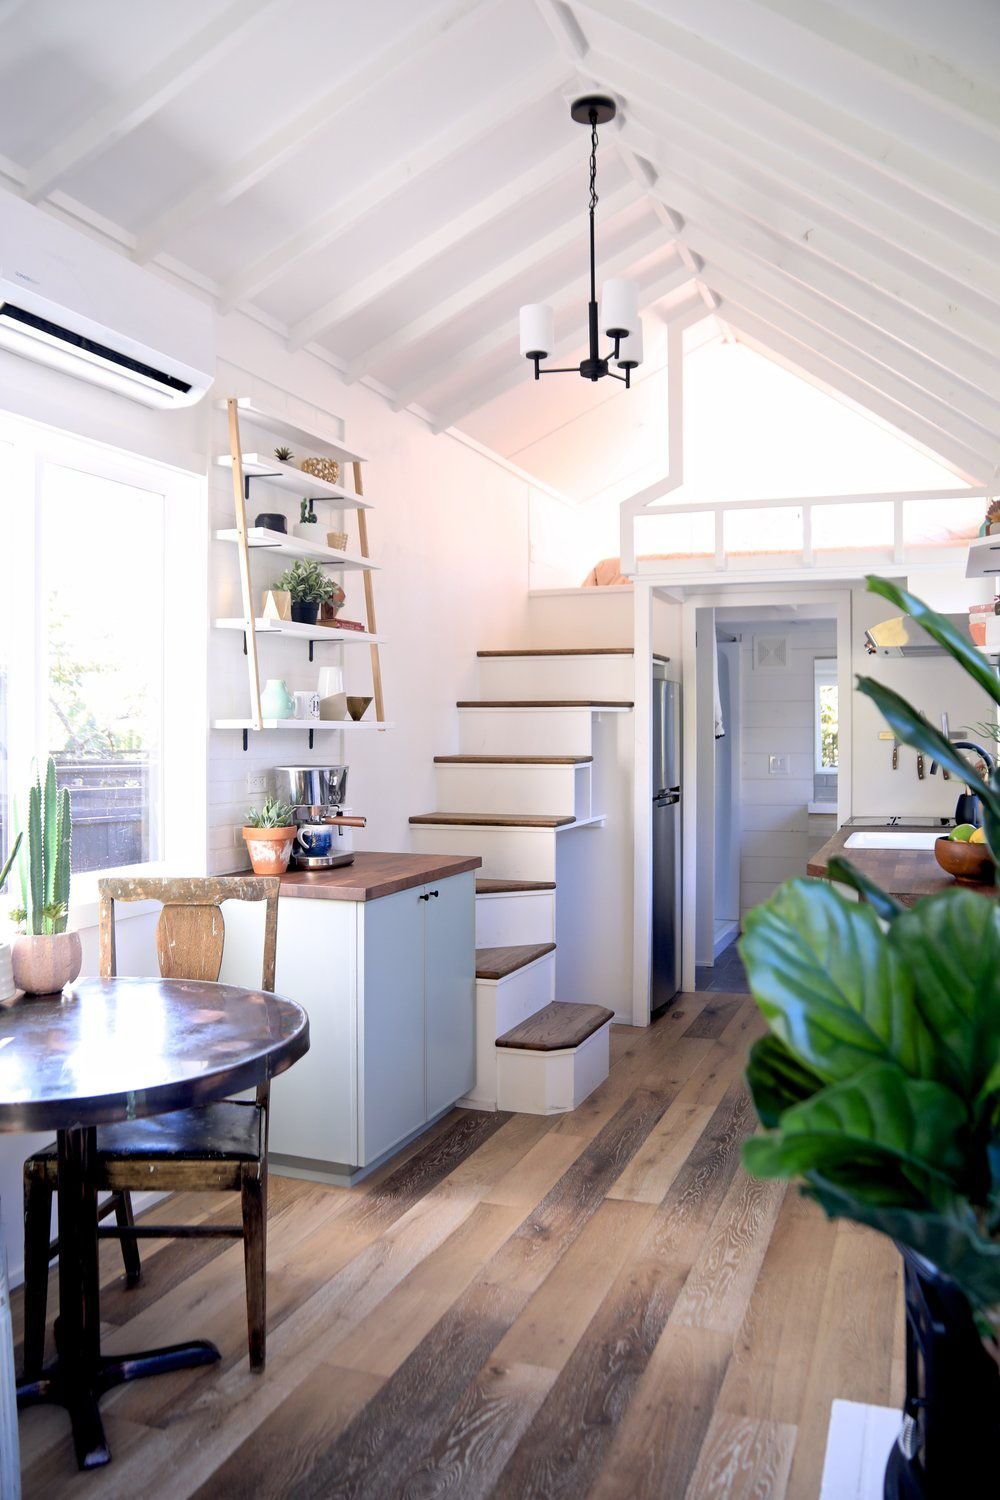 Cadence By Handcrafted Movement Tiny Living Tiny House Loft Modern Tiny House Tiny House Interior #tiny #home #living #room